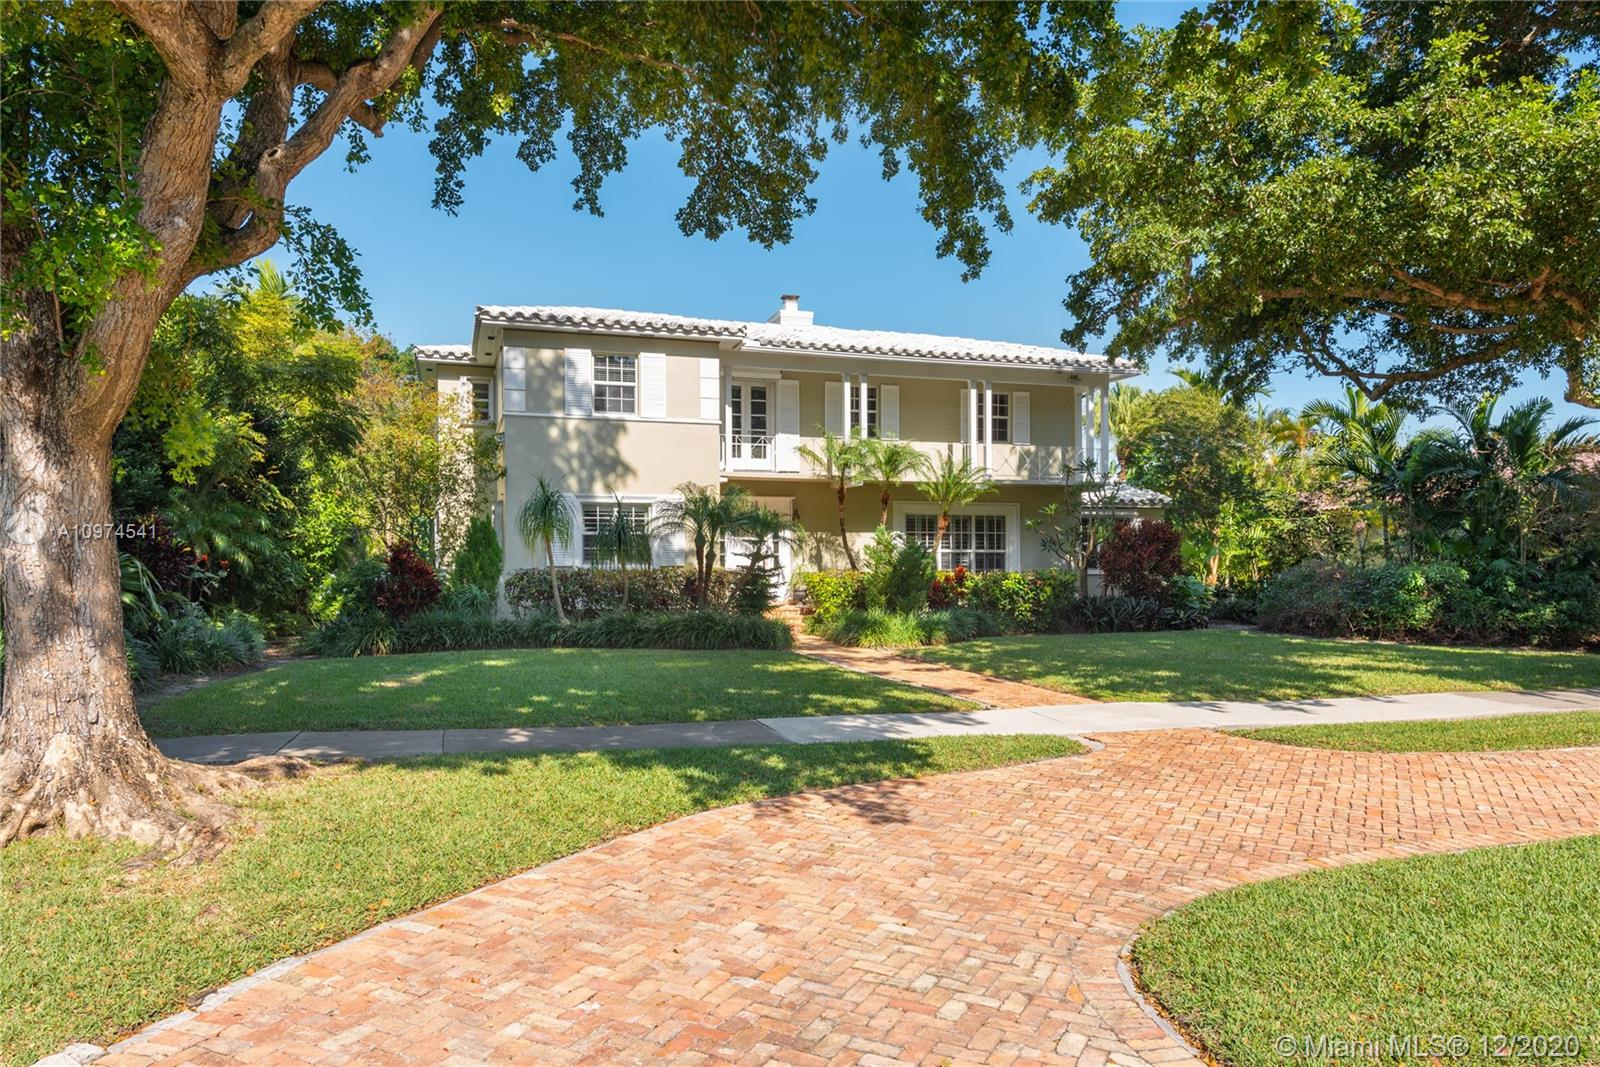 1225 NE 95th St, Miami Shores, Florida 33138, 4 Bedrooms Bedrooms, ,4 BathroomsBathrooms,Residential,For Sale,1225 NE 95th St,A10974541